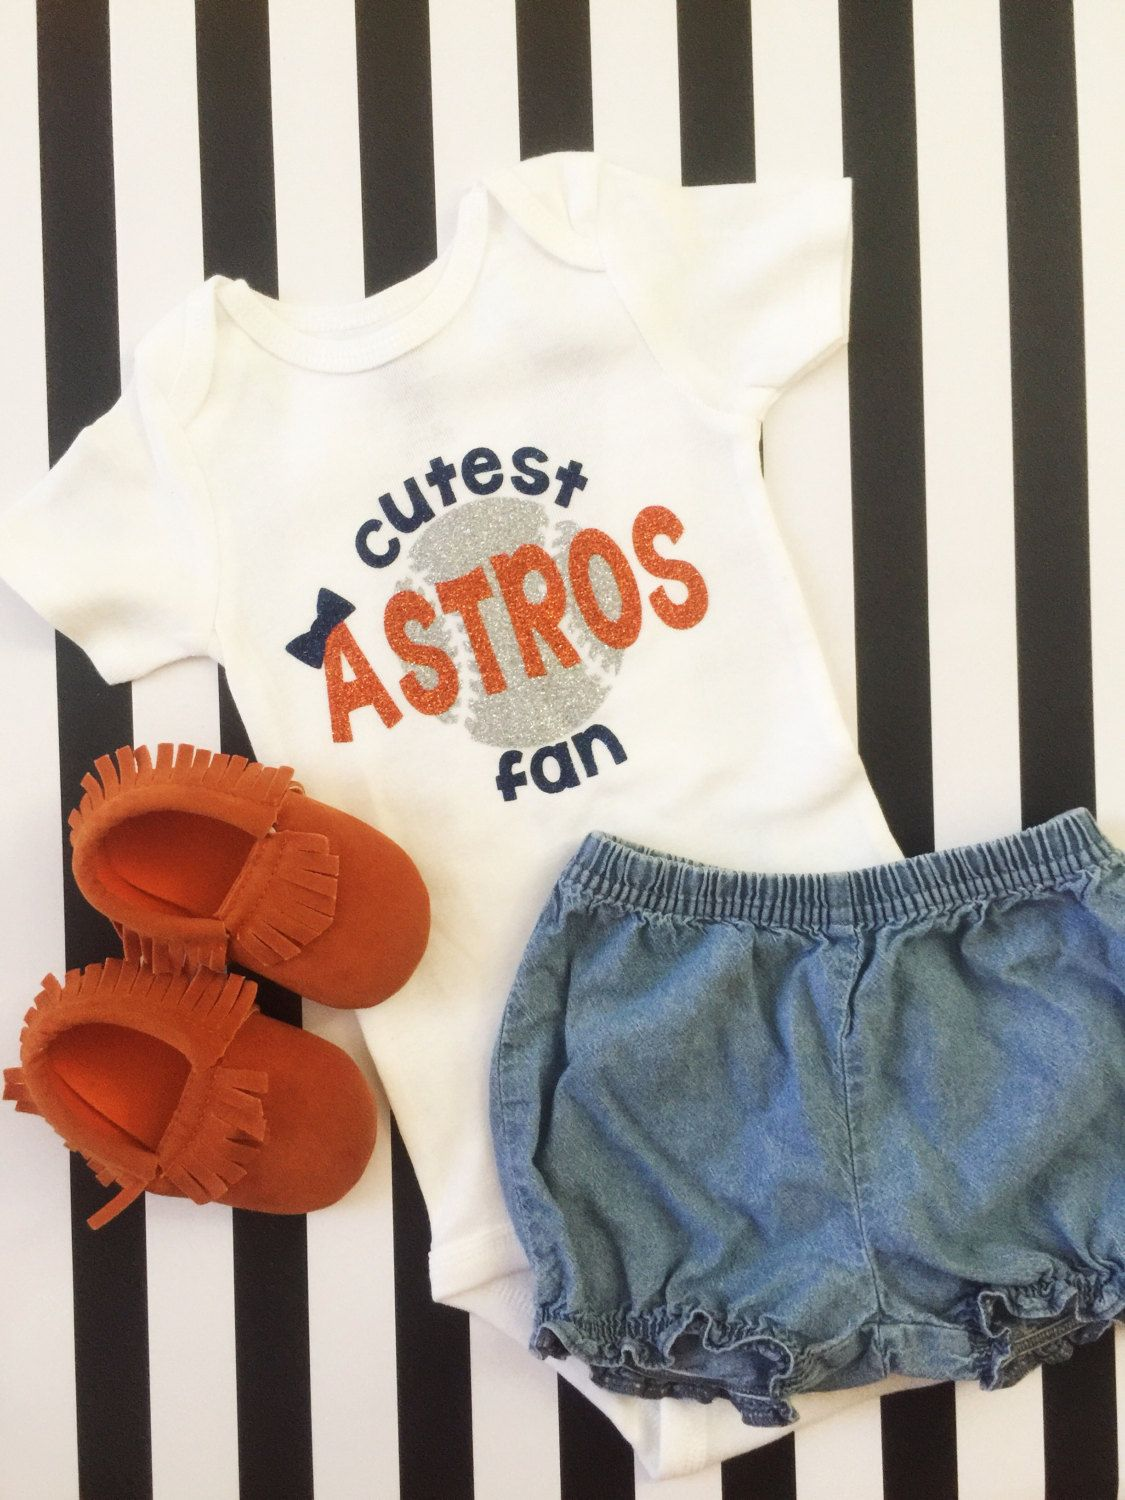 0d9f6f3e32 Cutest Astros Fan•Houston Astros Baby•Houston Astros Girl•Astros Shirt•Astros  Onesie•Astros Toddler Shirt•Houston, Texas• by 2PeasInAPodCo on Etsy